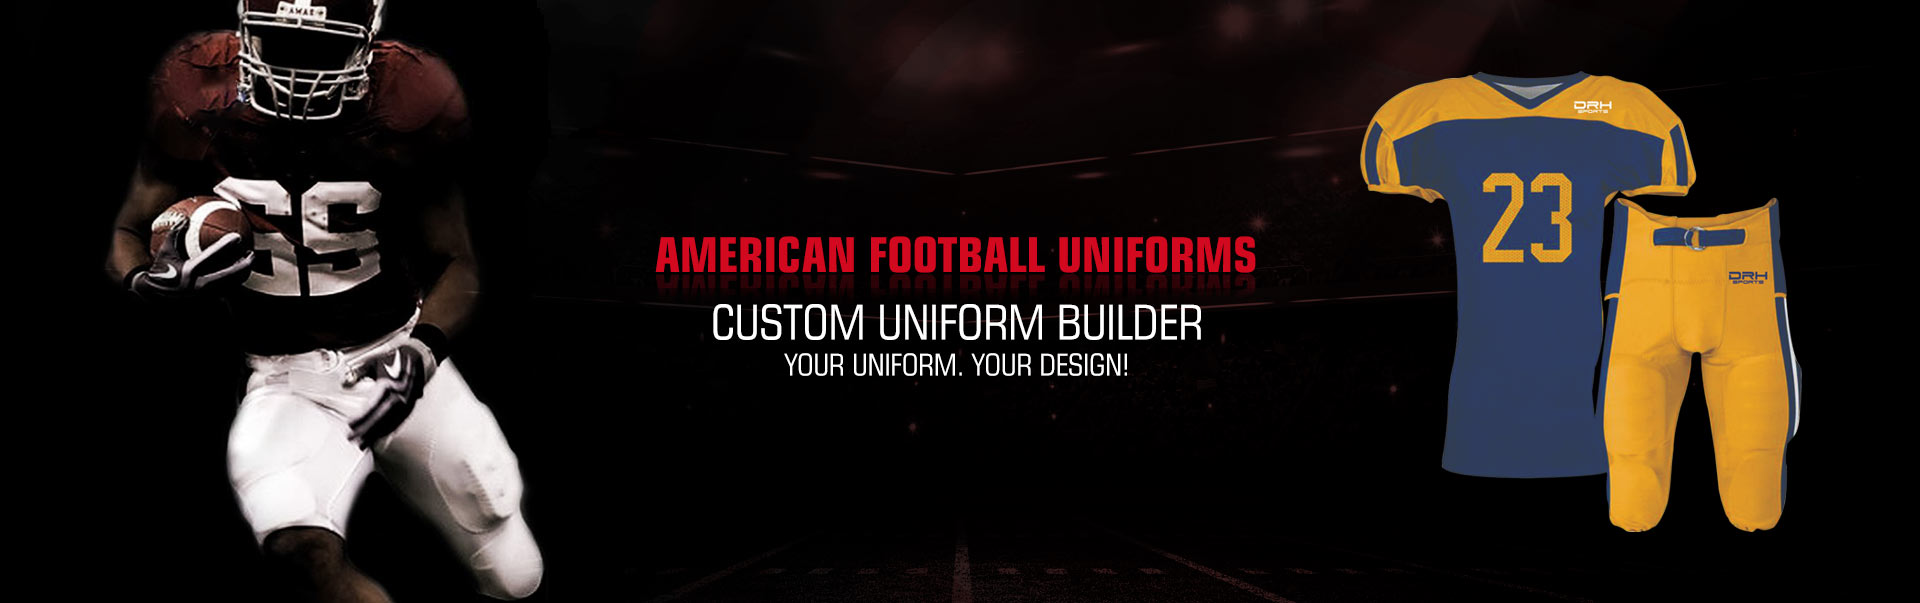 American Football Uniform Wholesaler, Suppliers in Sacramento